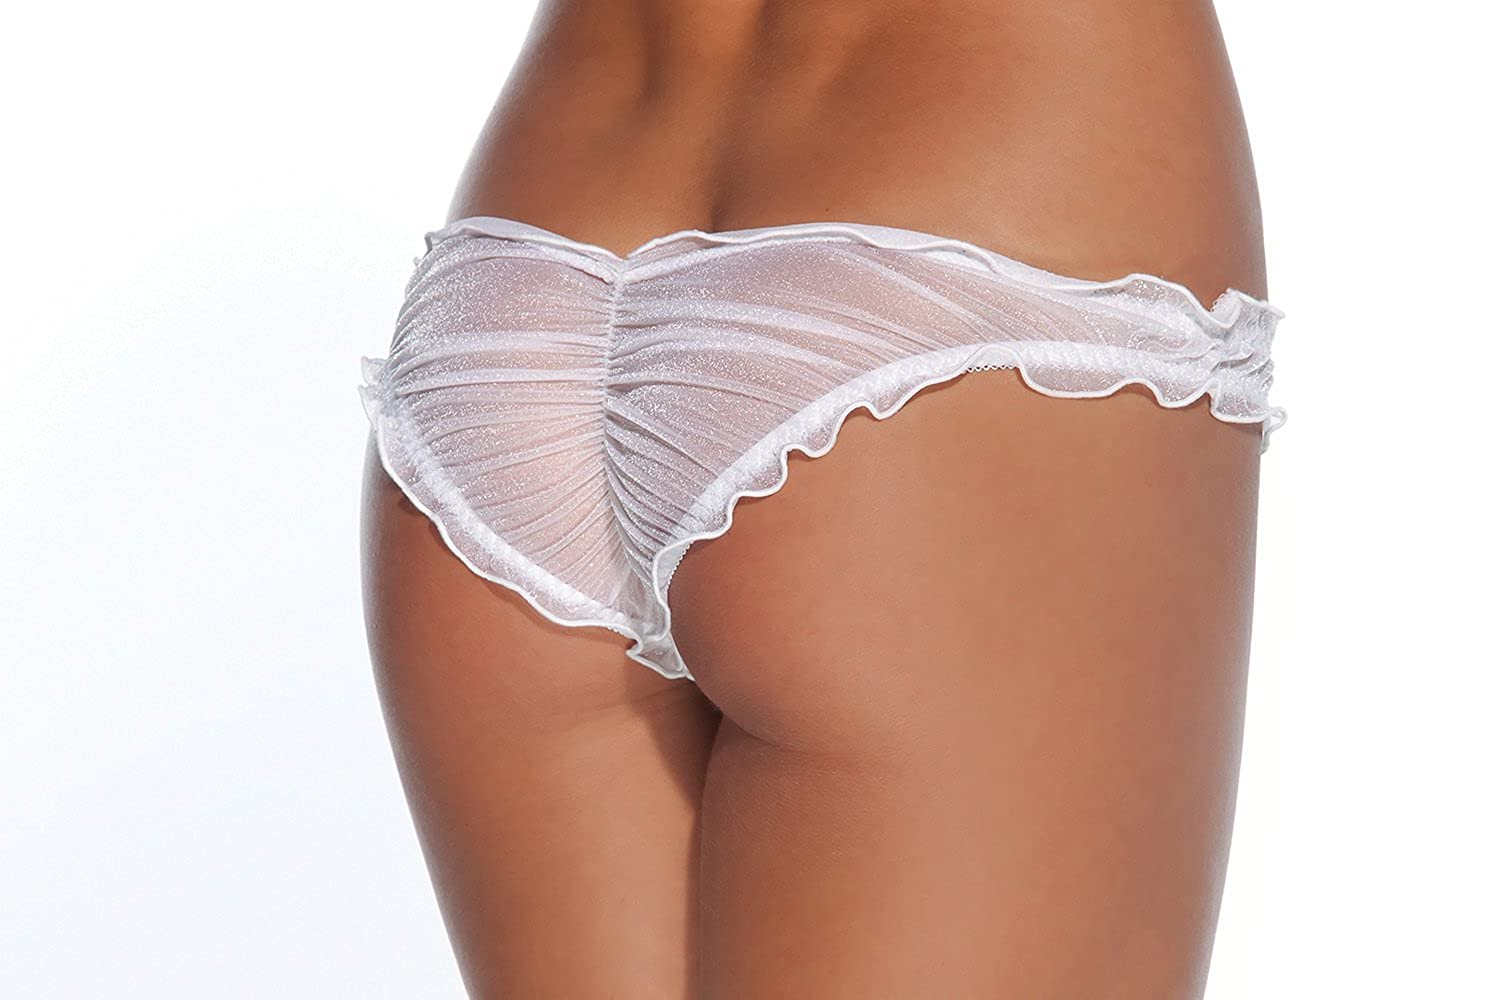 ddd86e1448ef Coquette Sheer Bridal Panty White Small at Amazon Women's Clothing store:  Lingerie Sets